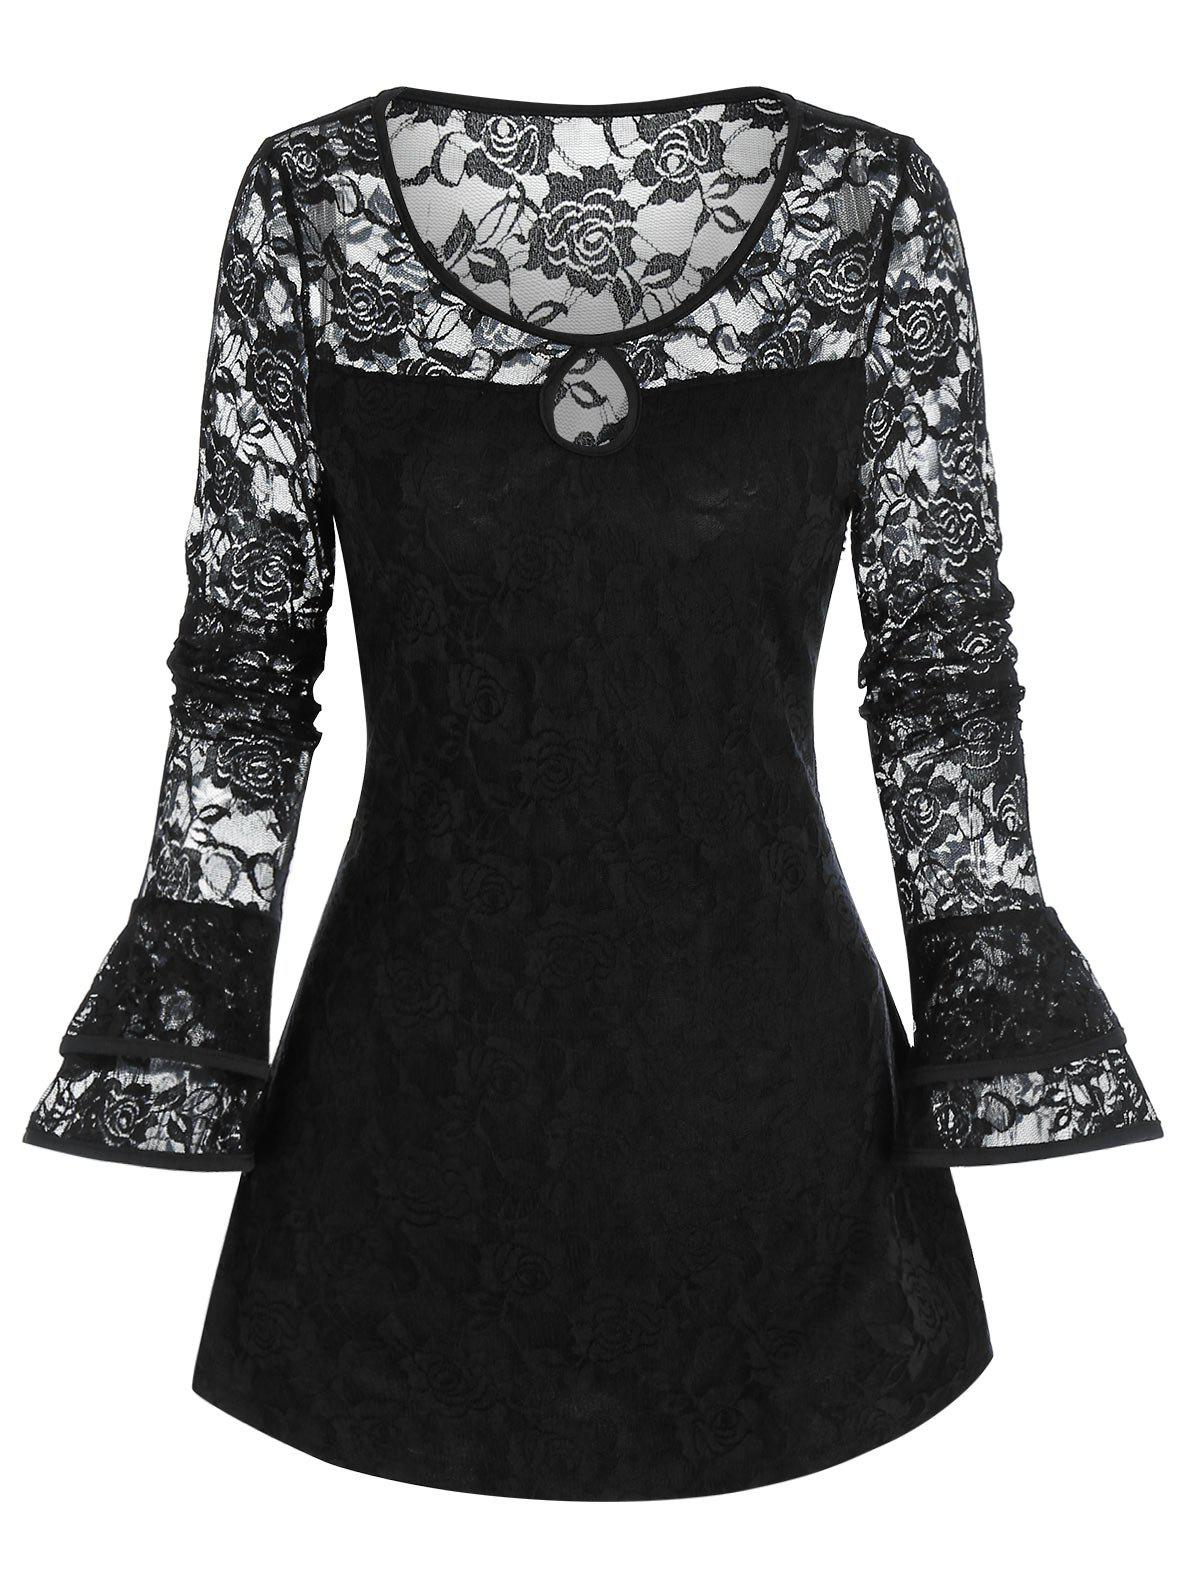 Hot Gothic Flower Lace Keyhole Ruffle Cuff Top